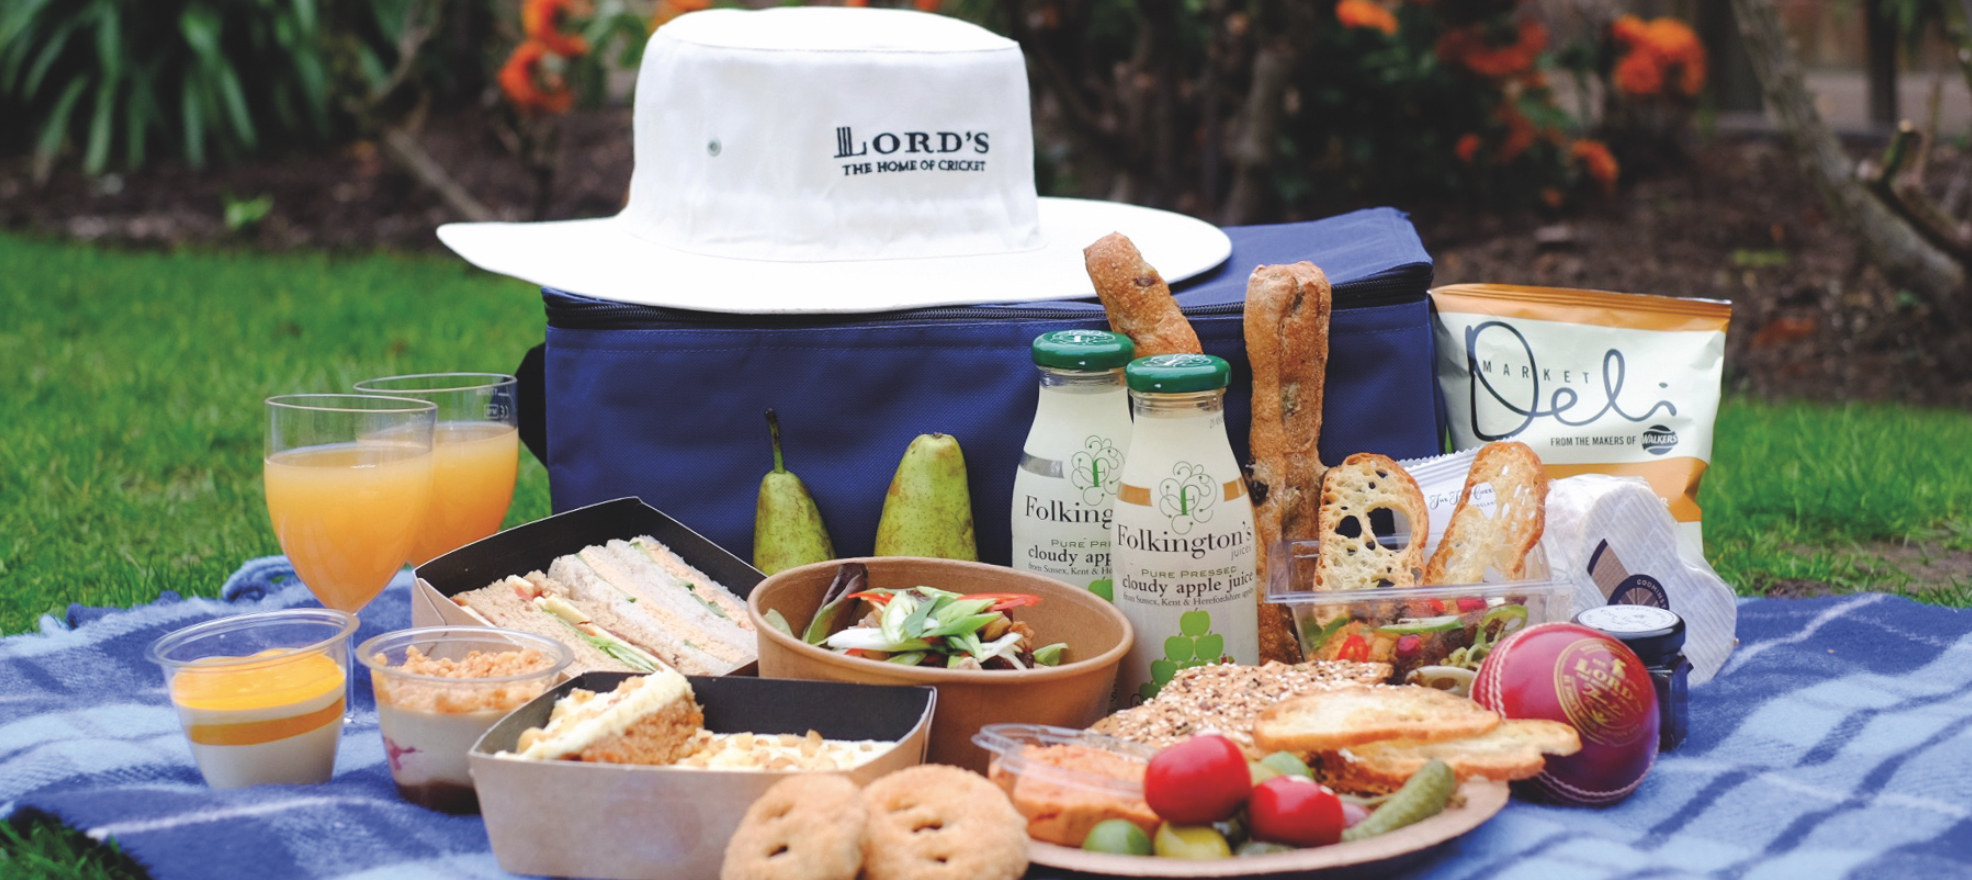 Lord's cricket ground picnic